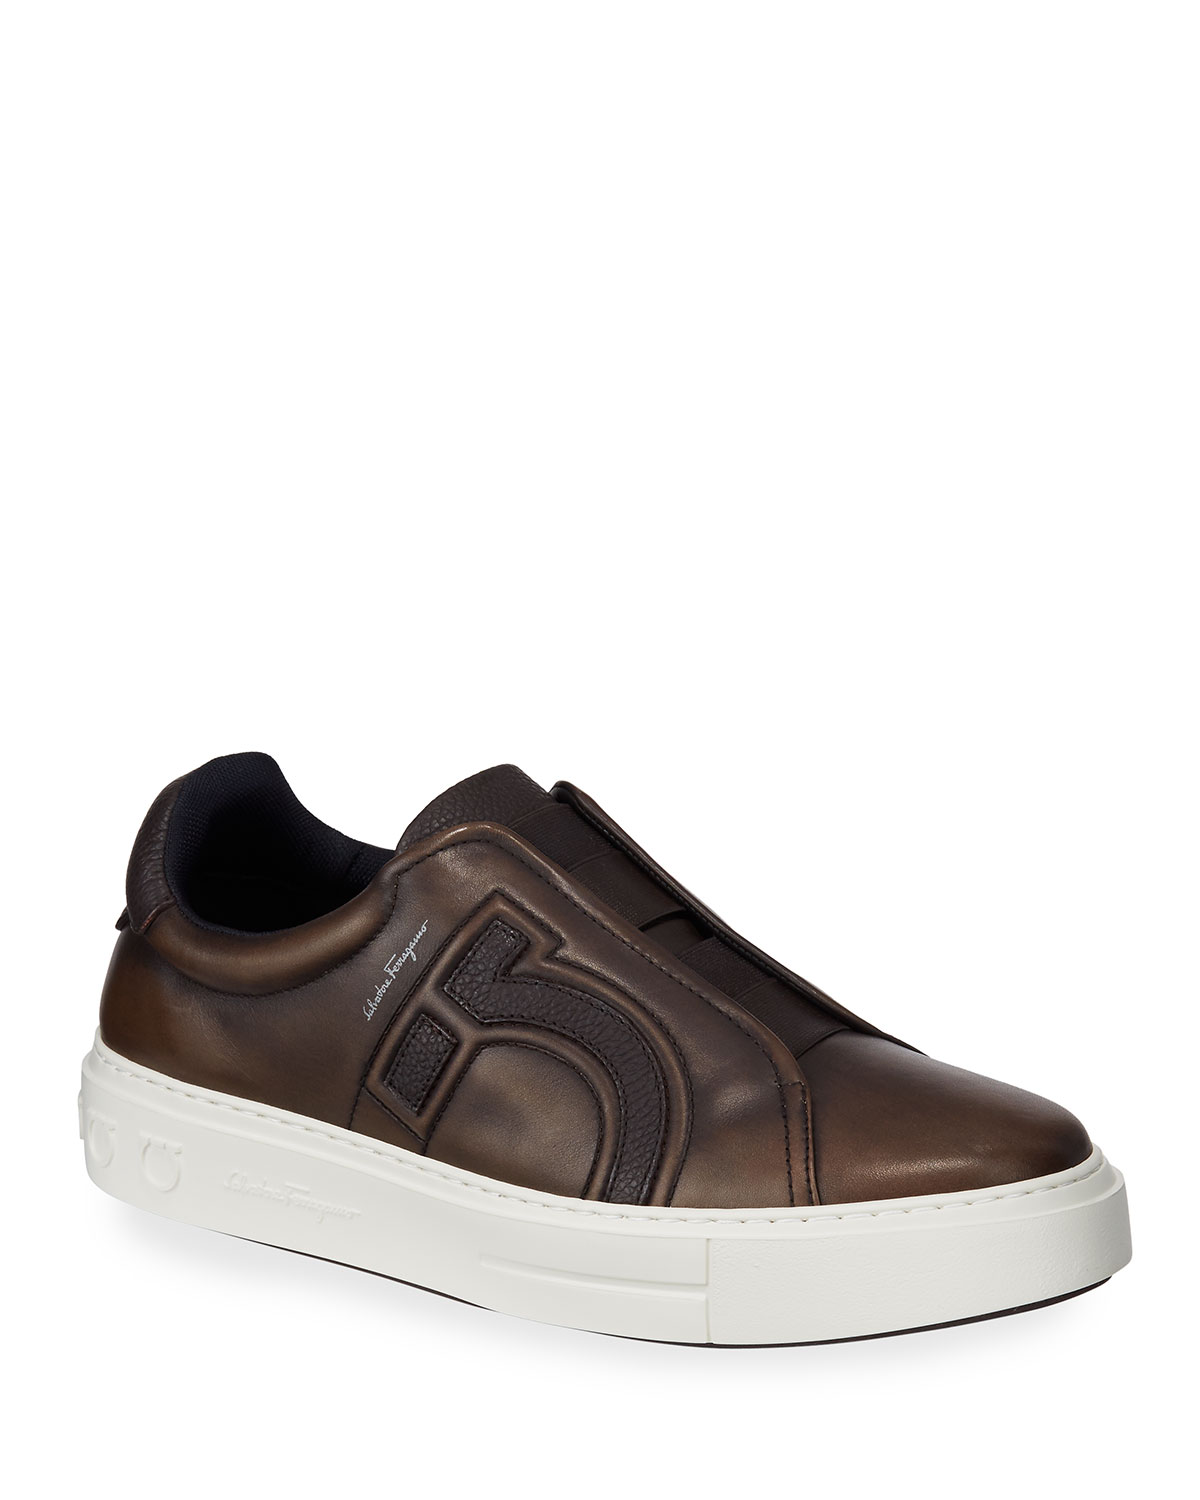 Salvatore Ferragamo Sneakers MEN'S TASKO SLIP-ON LEATHER SNEAKERS